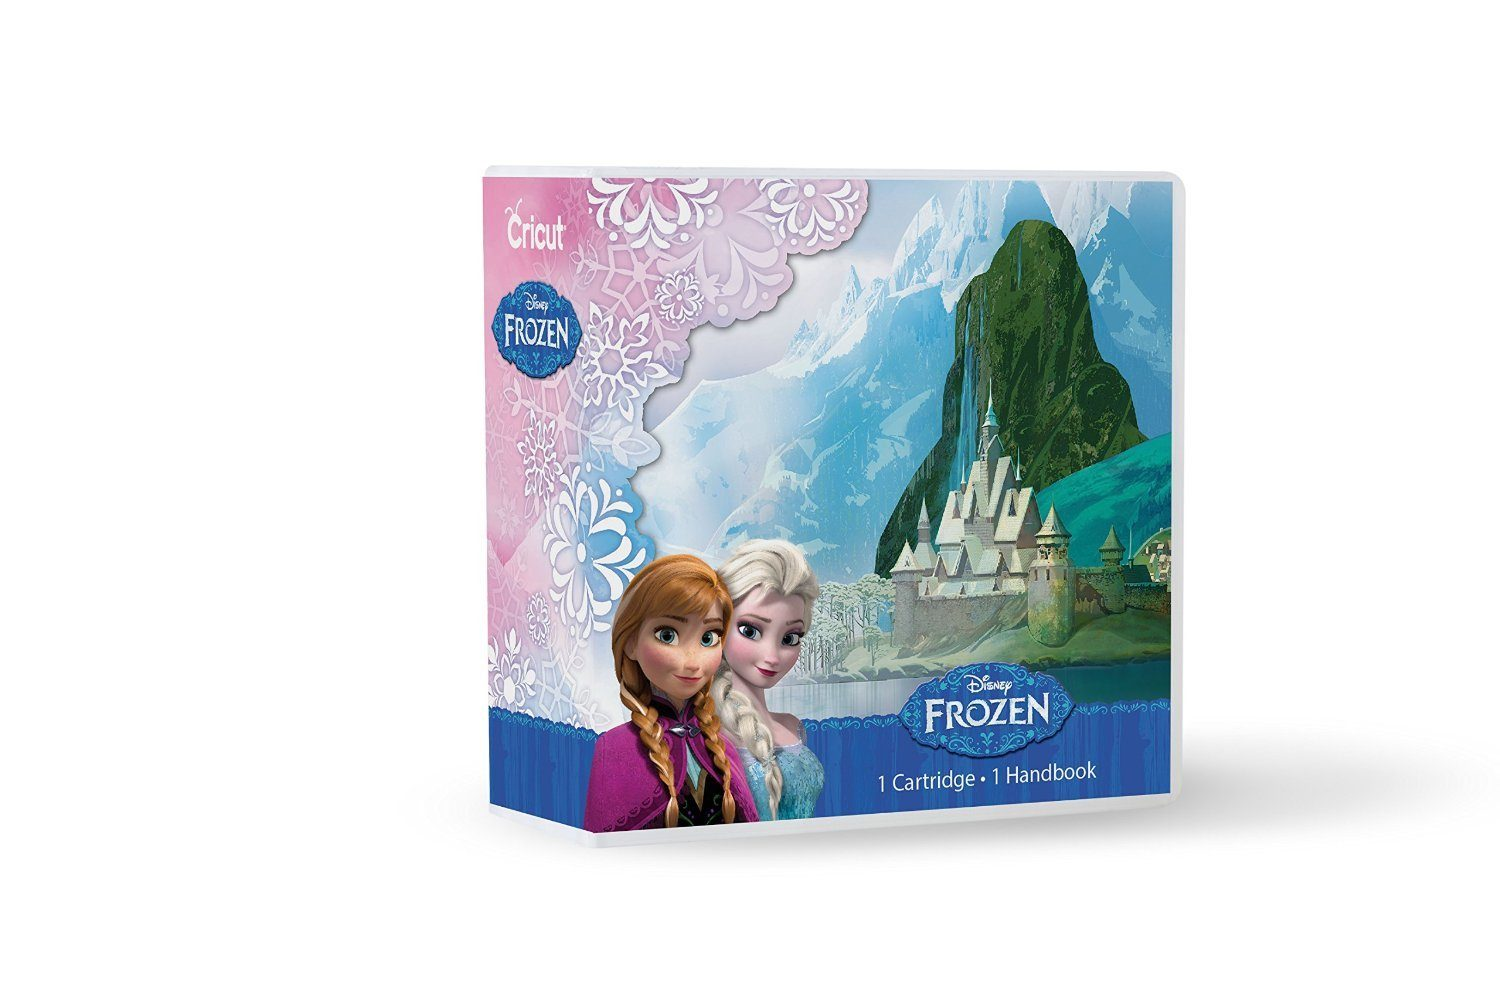 Cricut Disney Frozen Cartridge Only $18.61 (Reg. $39.99)!